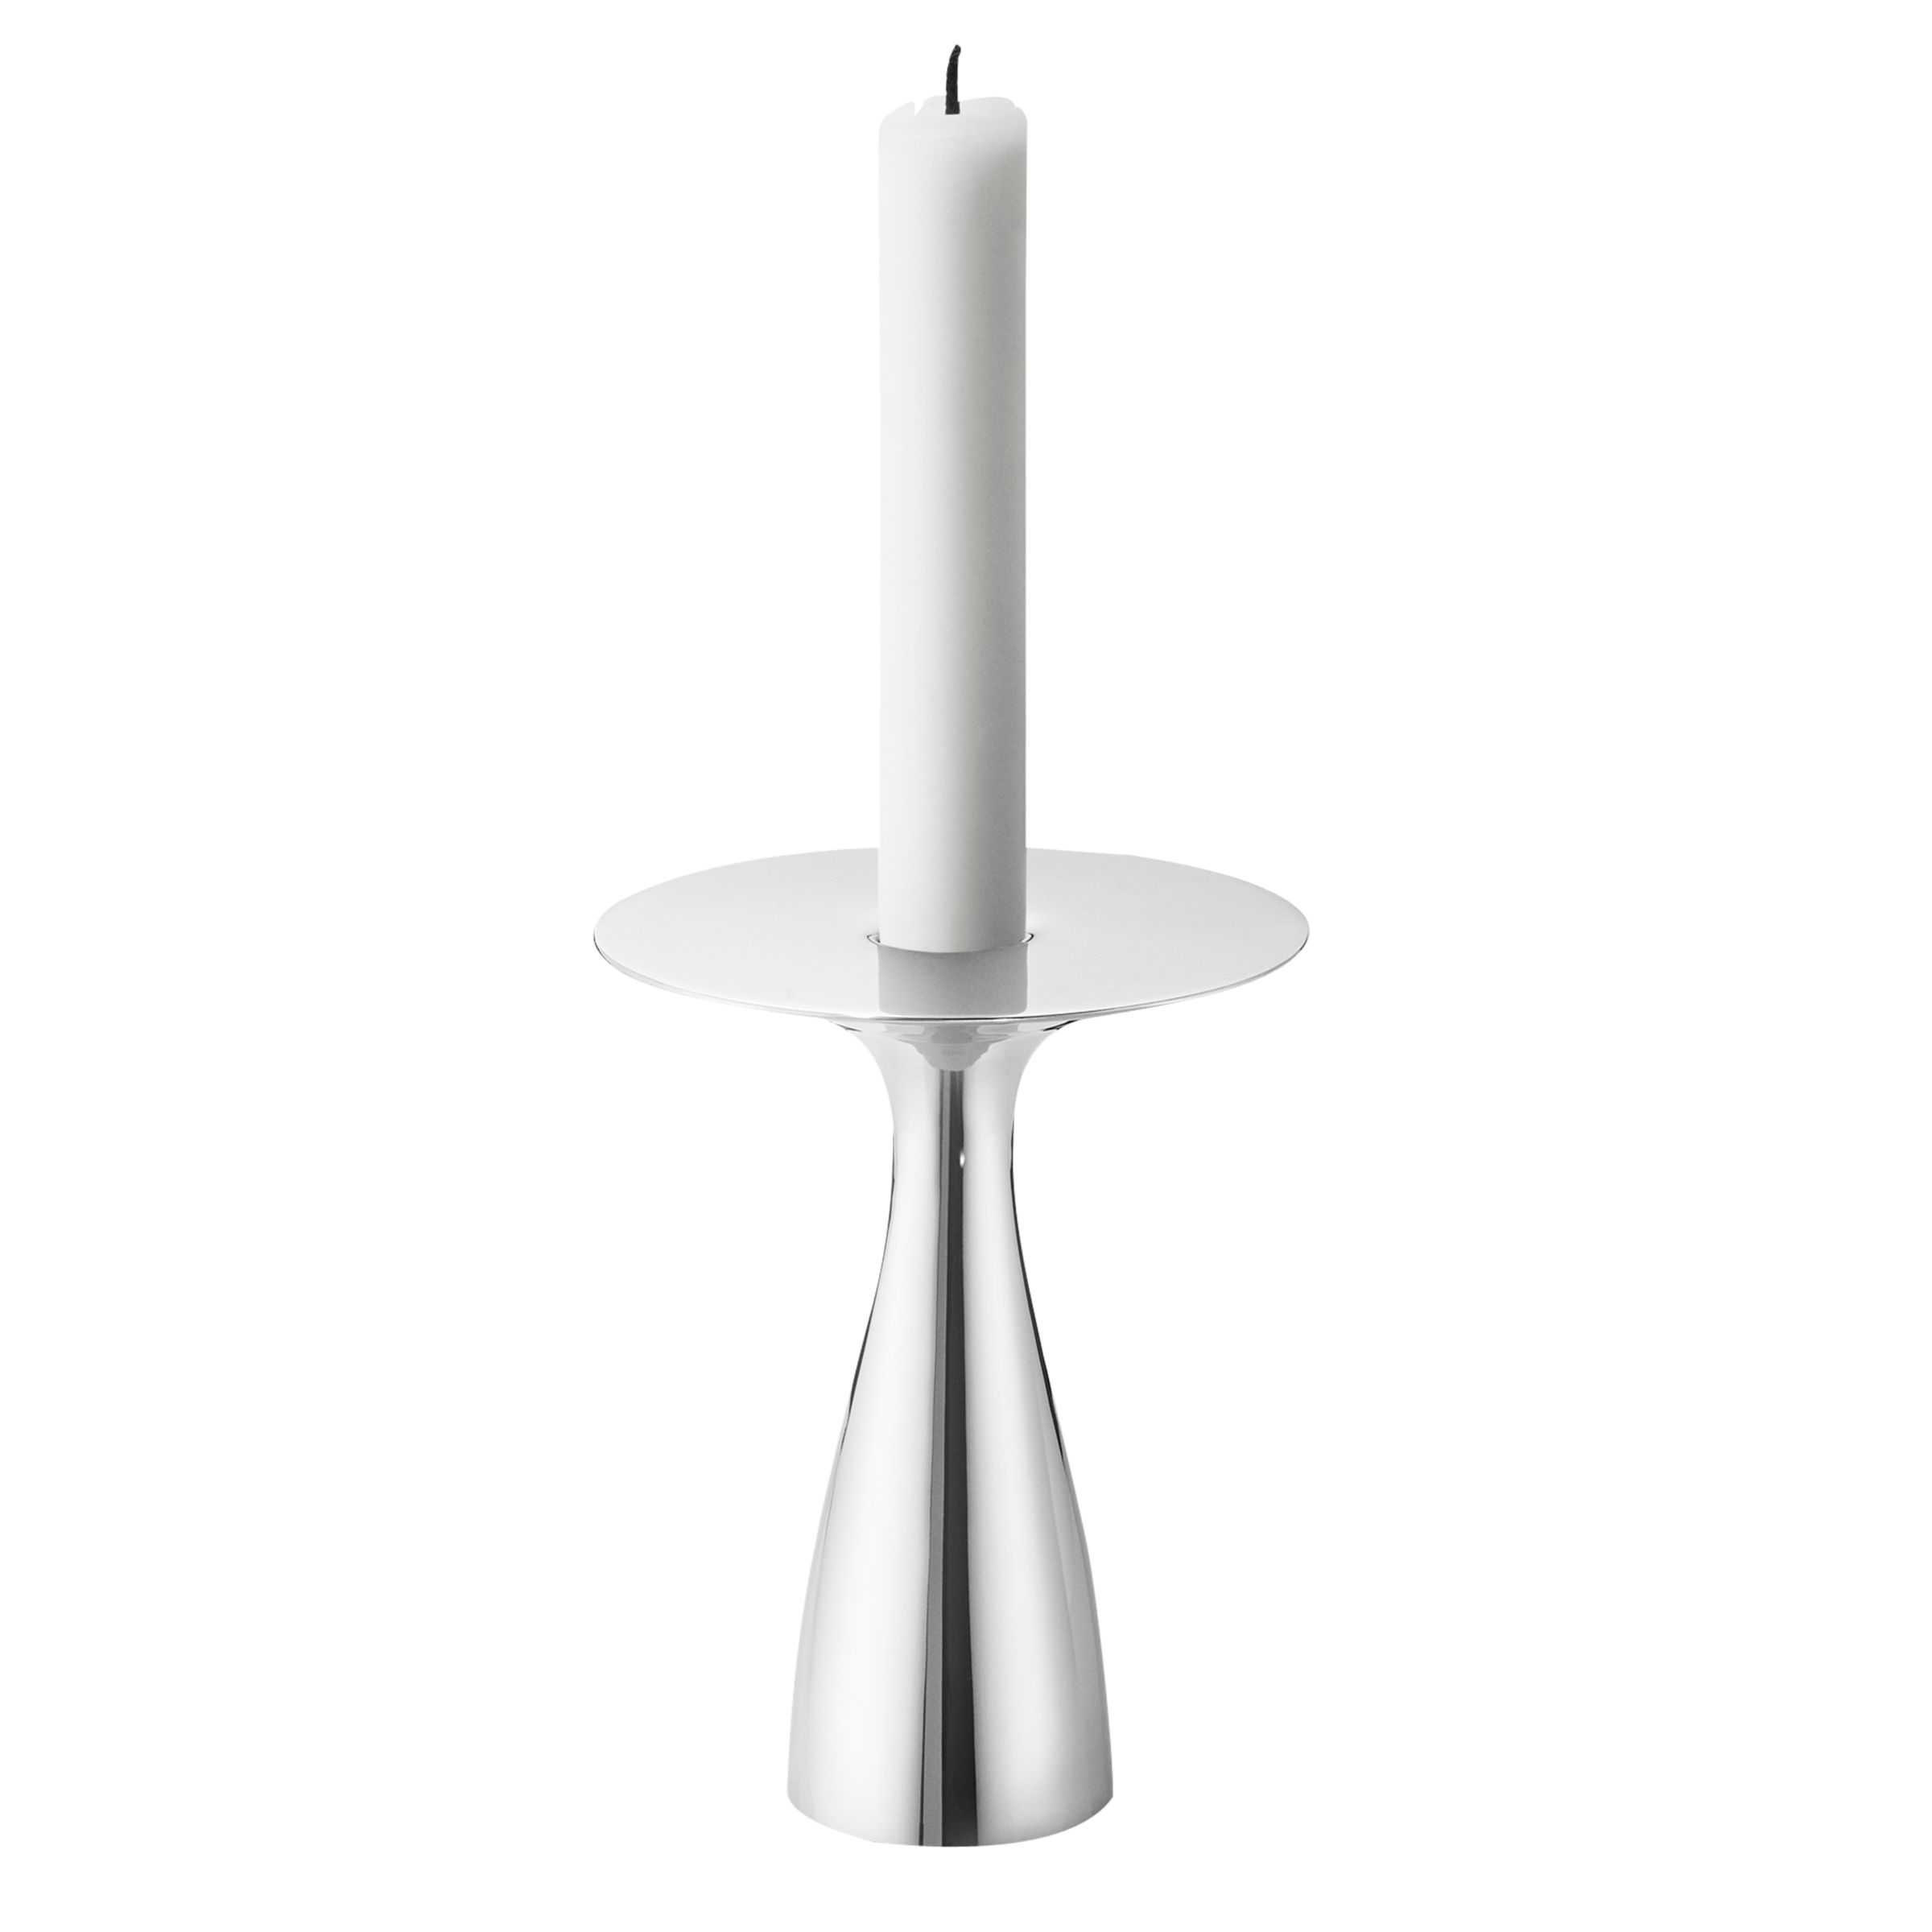 Georg Jensen Georg Jensen Alfredo Candlestick Holder, Medium